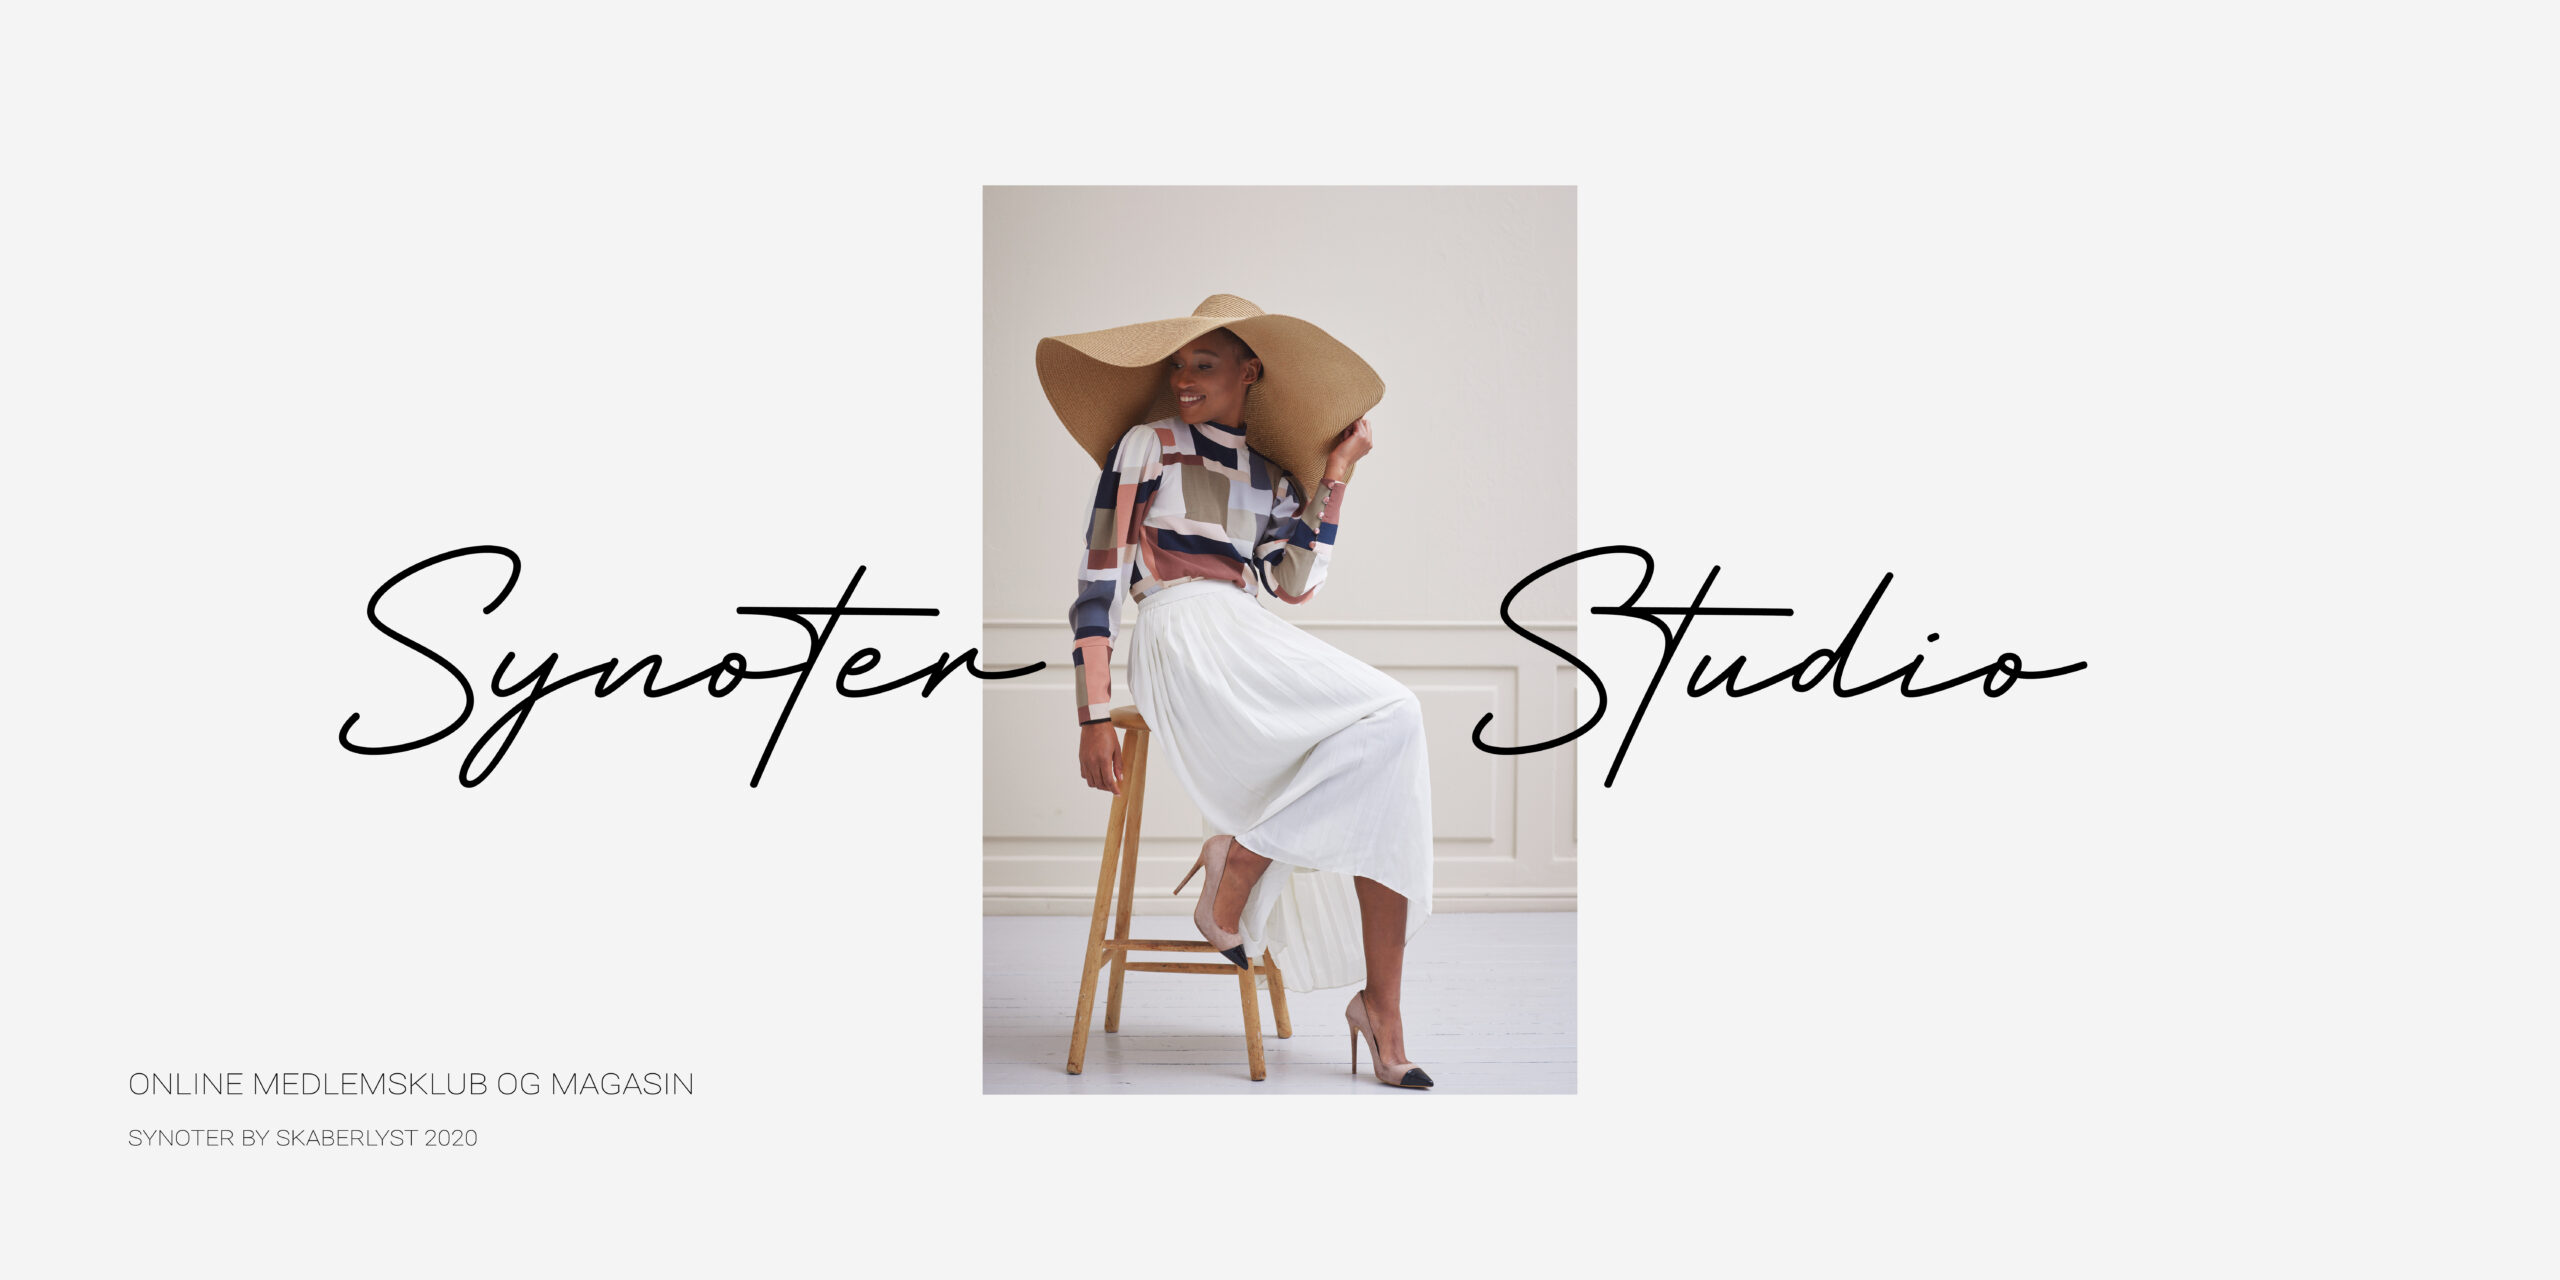 Synoter studio by Skaberlyst